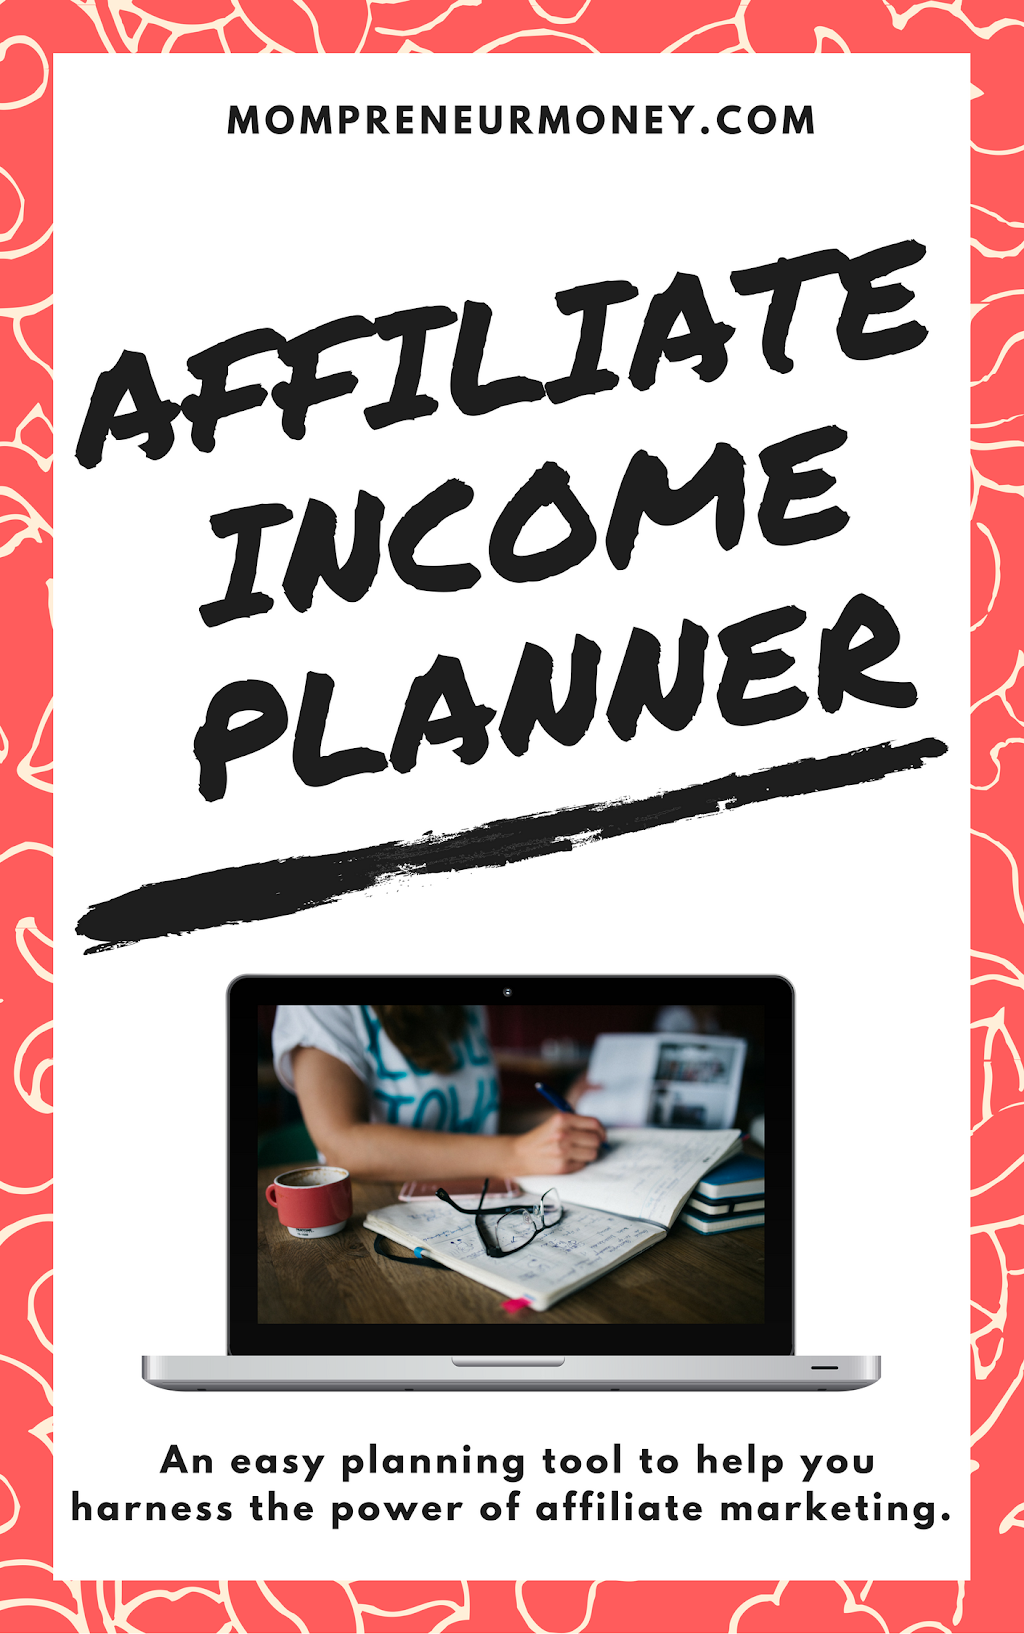 Affiliate Income Planner for Mompreneurs